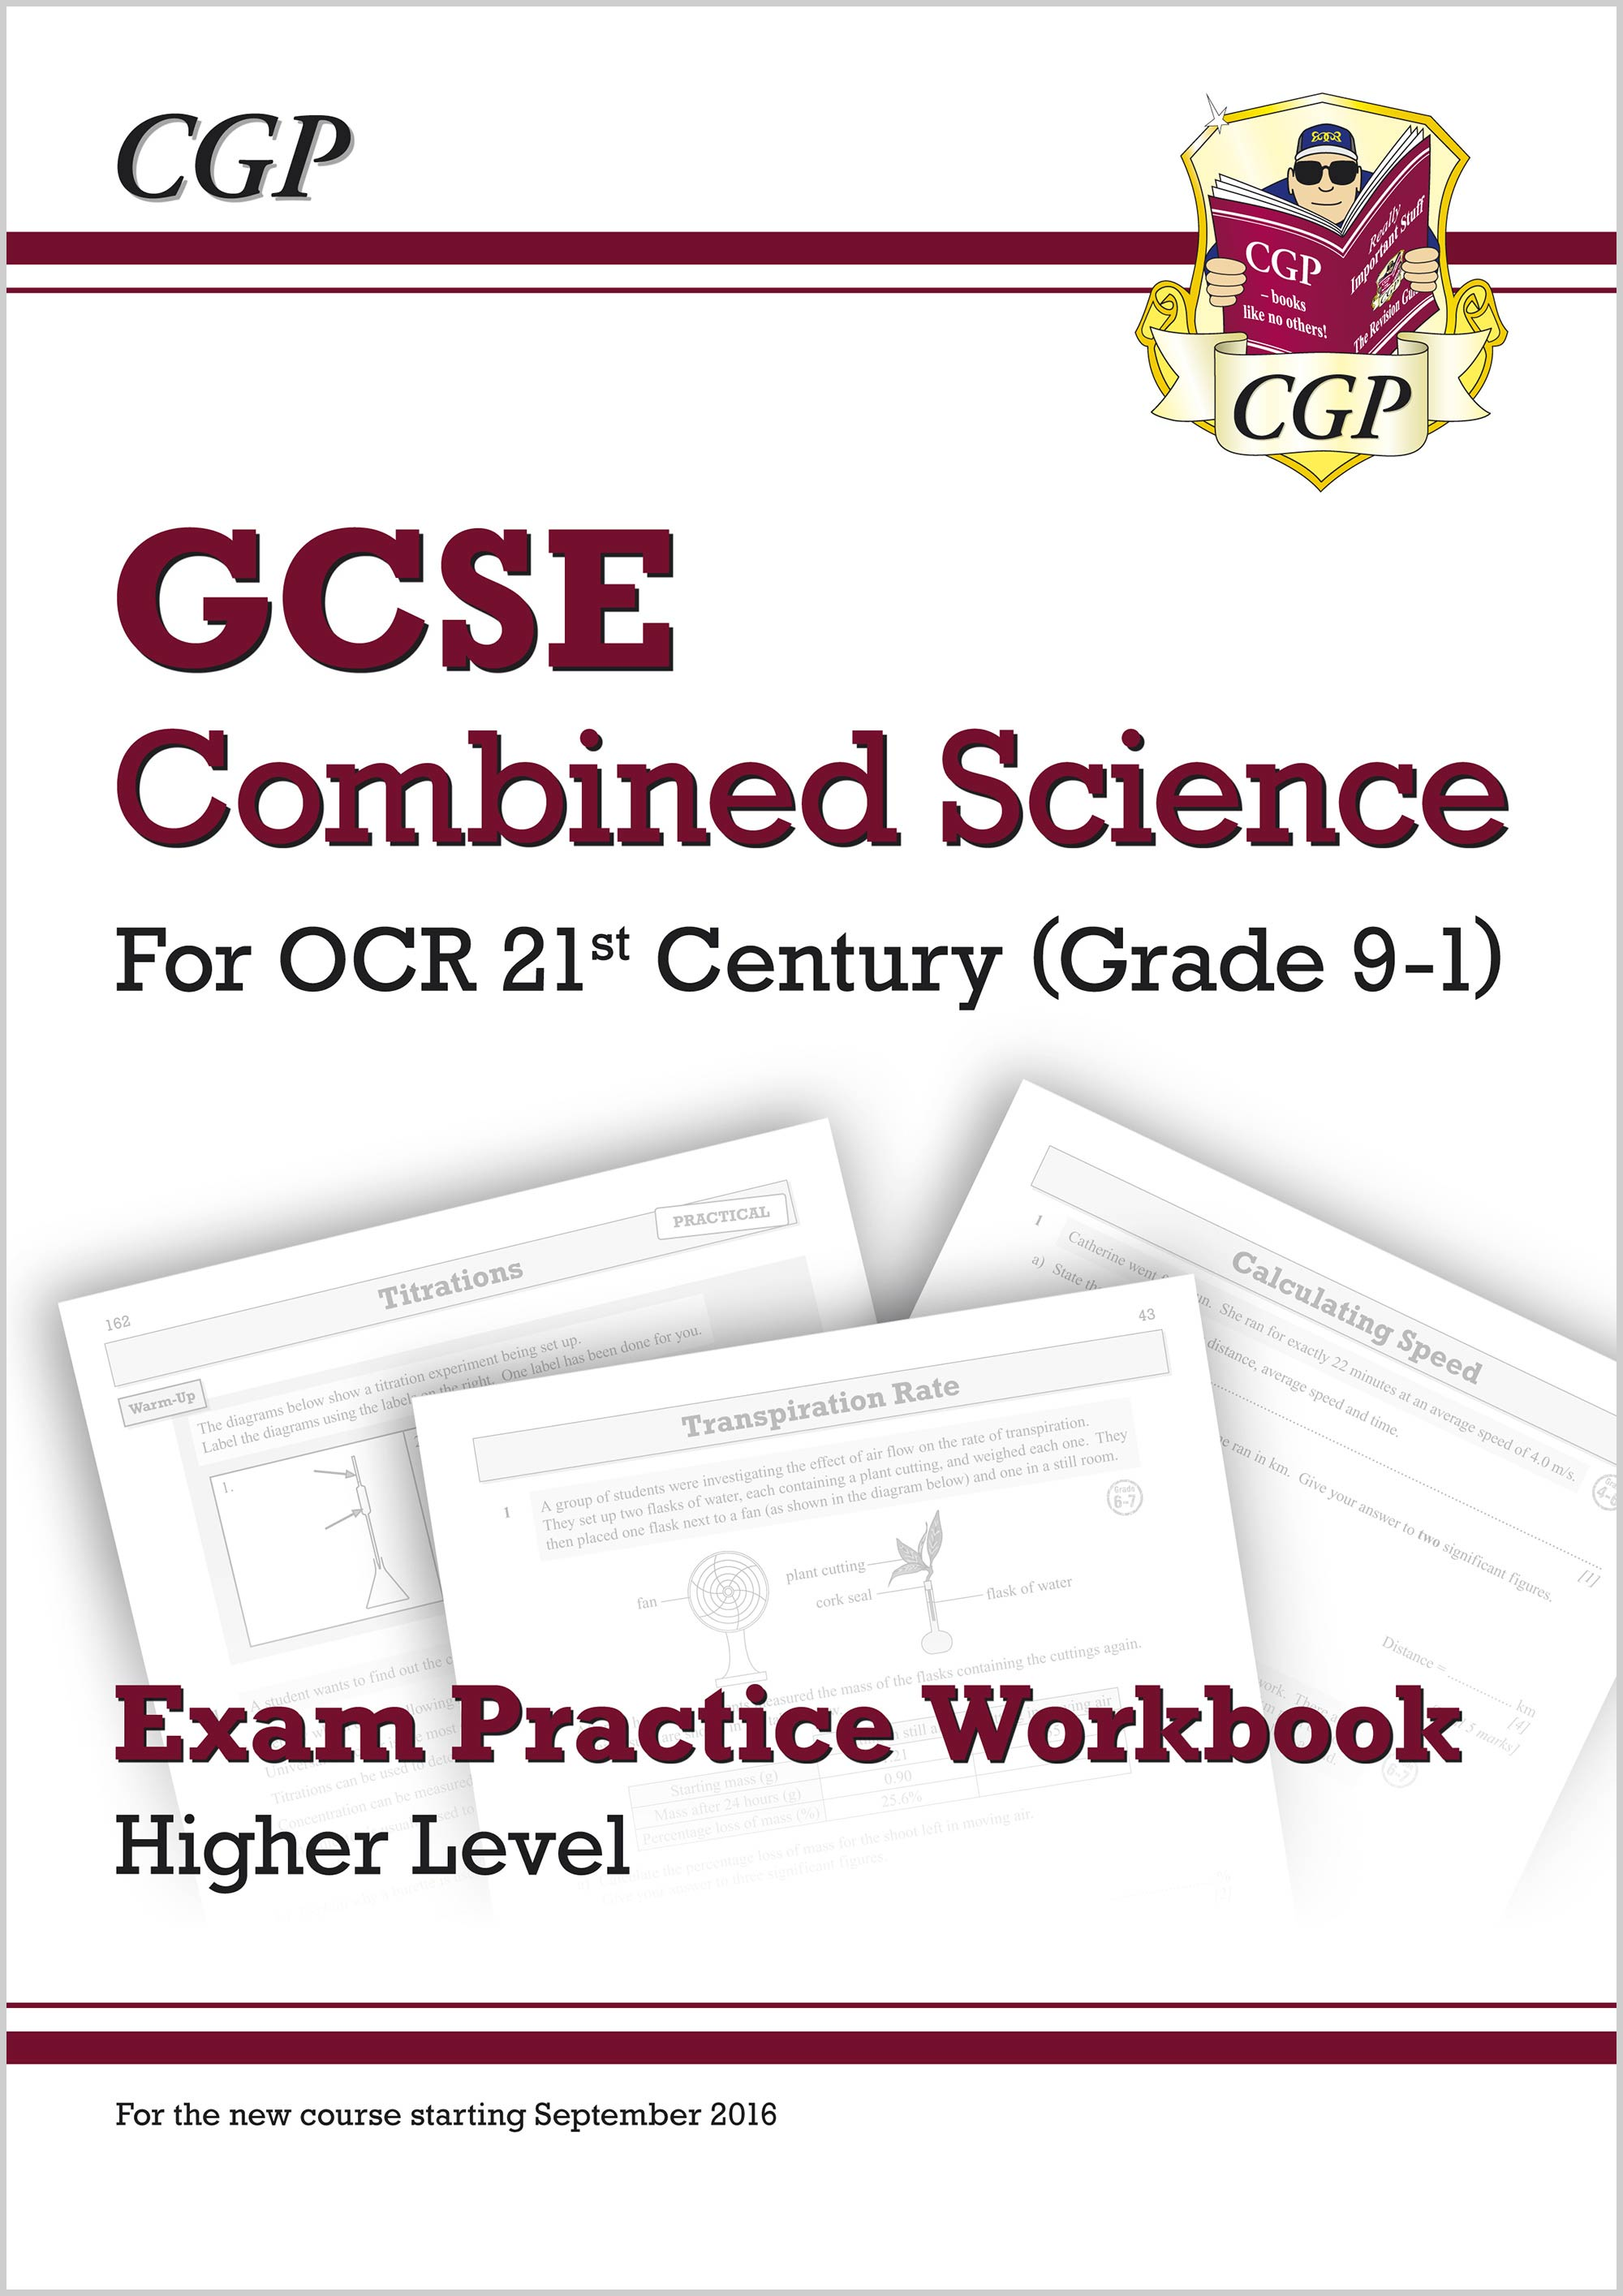 S2HQ41 - New Grade 9-1 GCSE Combined Science: OCR 21st Century Exam Practice Workbook - Higher